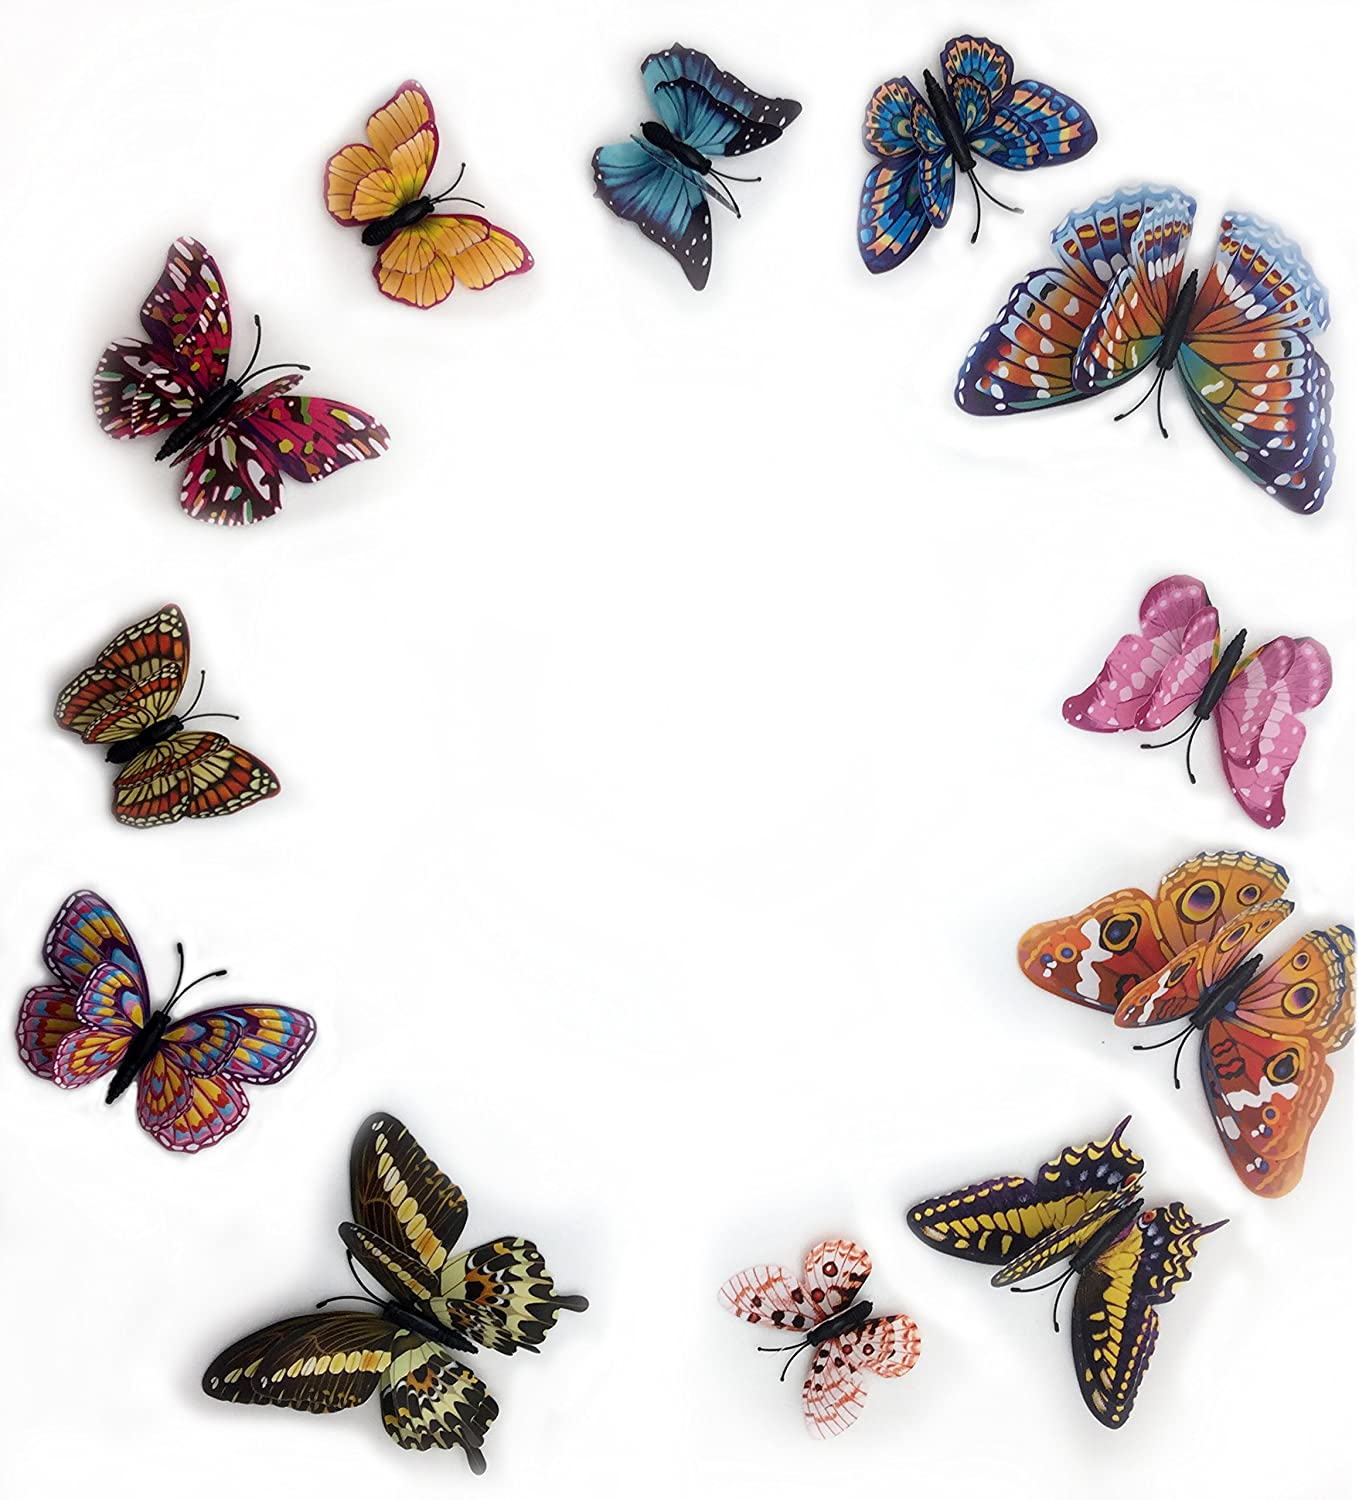 Removable Diy 3d Colorful Butterfly Wall Sticker Murals Wall Decals Wall Decorations Art Decor Decoration for Nursery Room Classroom Offices Kids Bedroom Bathroom Living Room